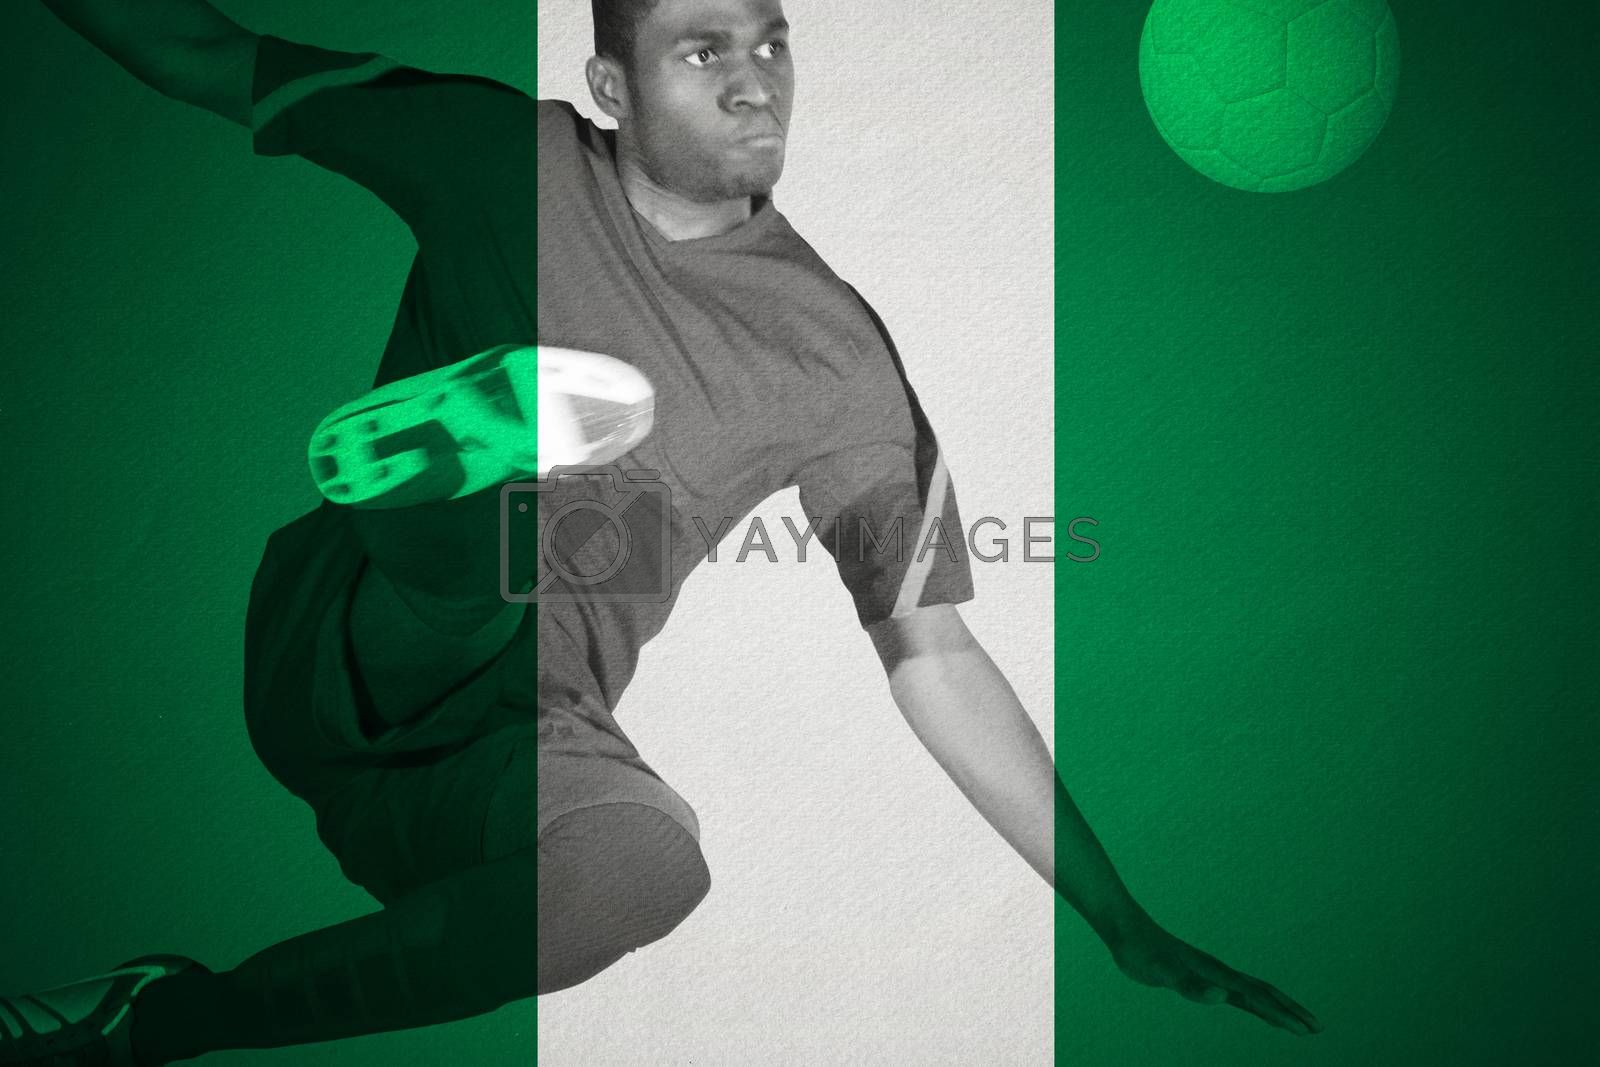 Football player in green kicking by Wavebreakmedia